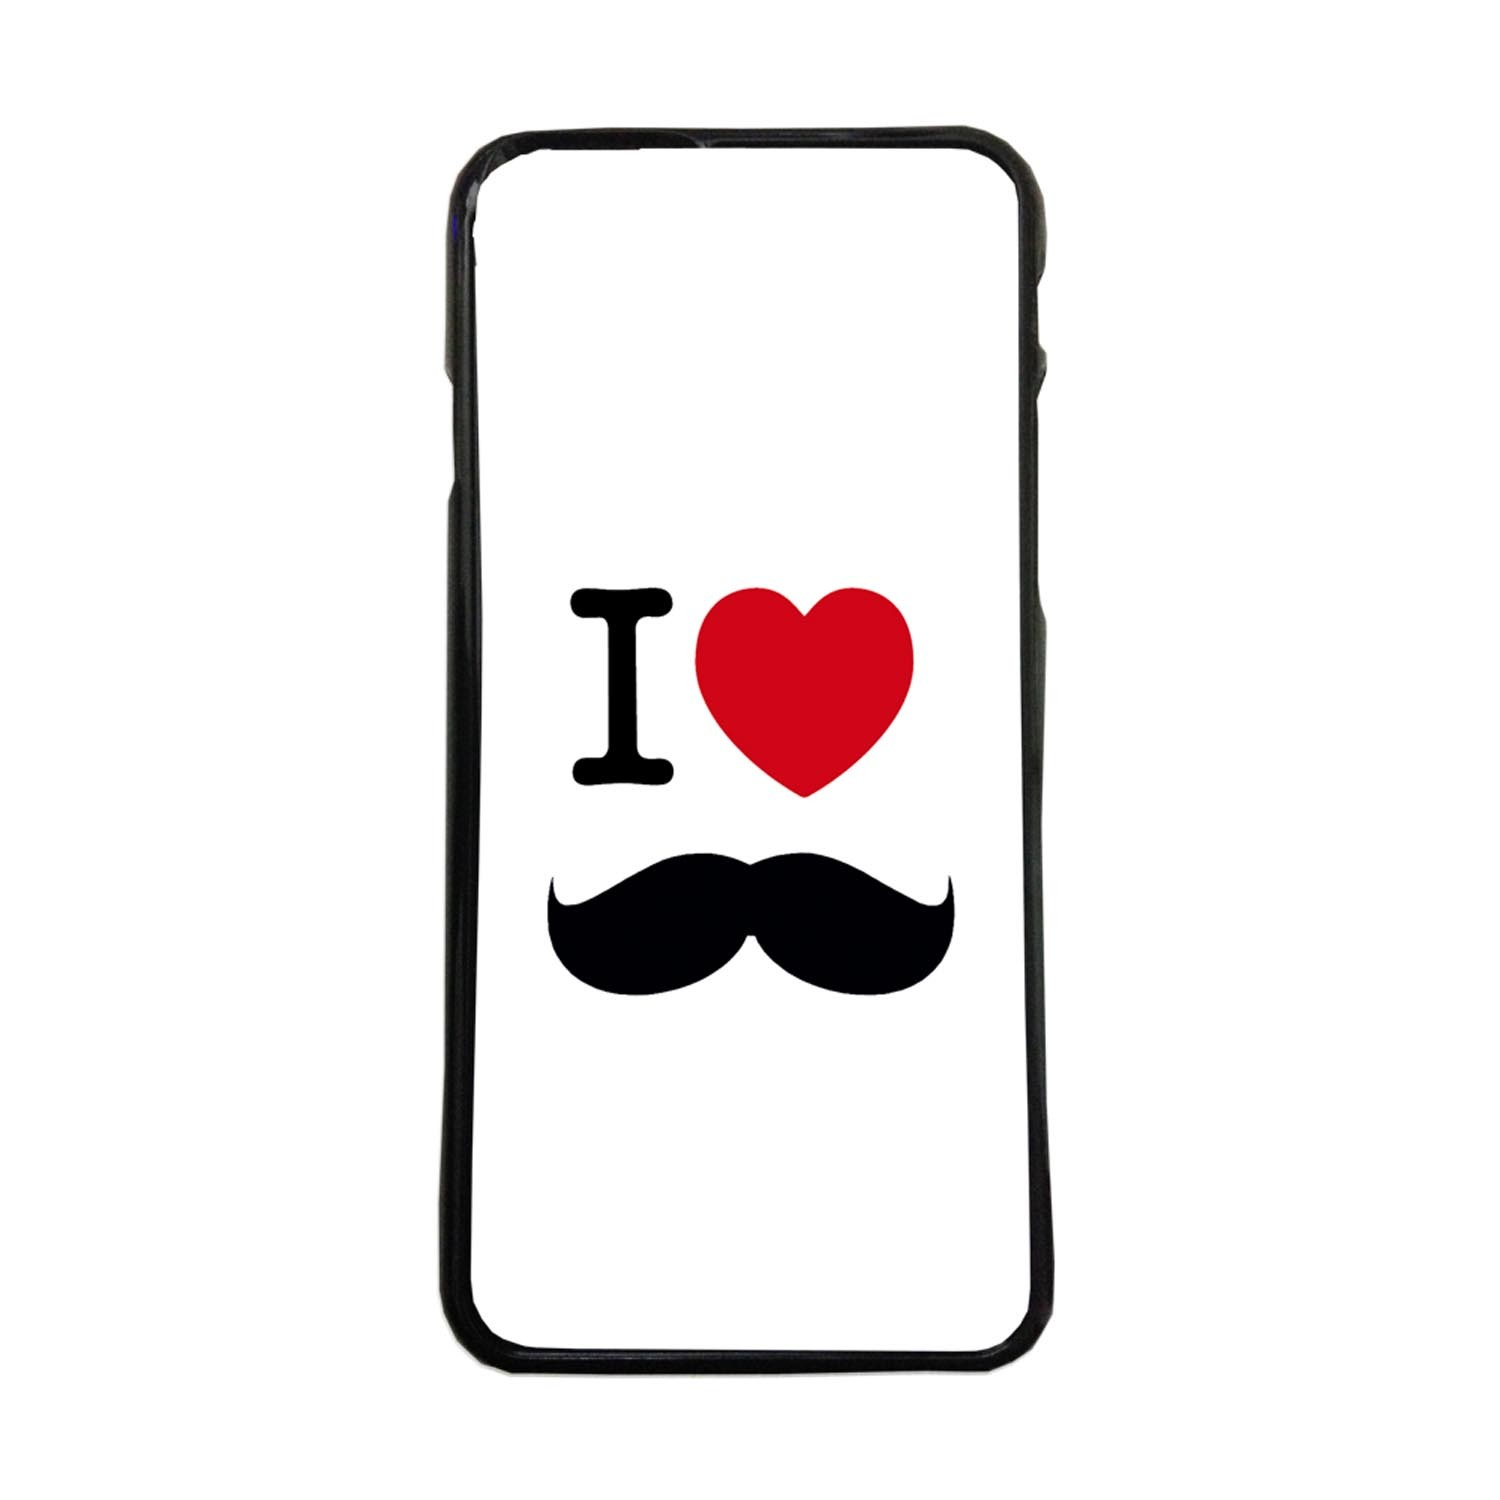 Fundas movil carcasas compatible con samsung galaxy s8 plus I love bigotes